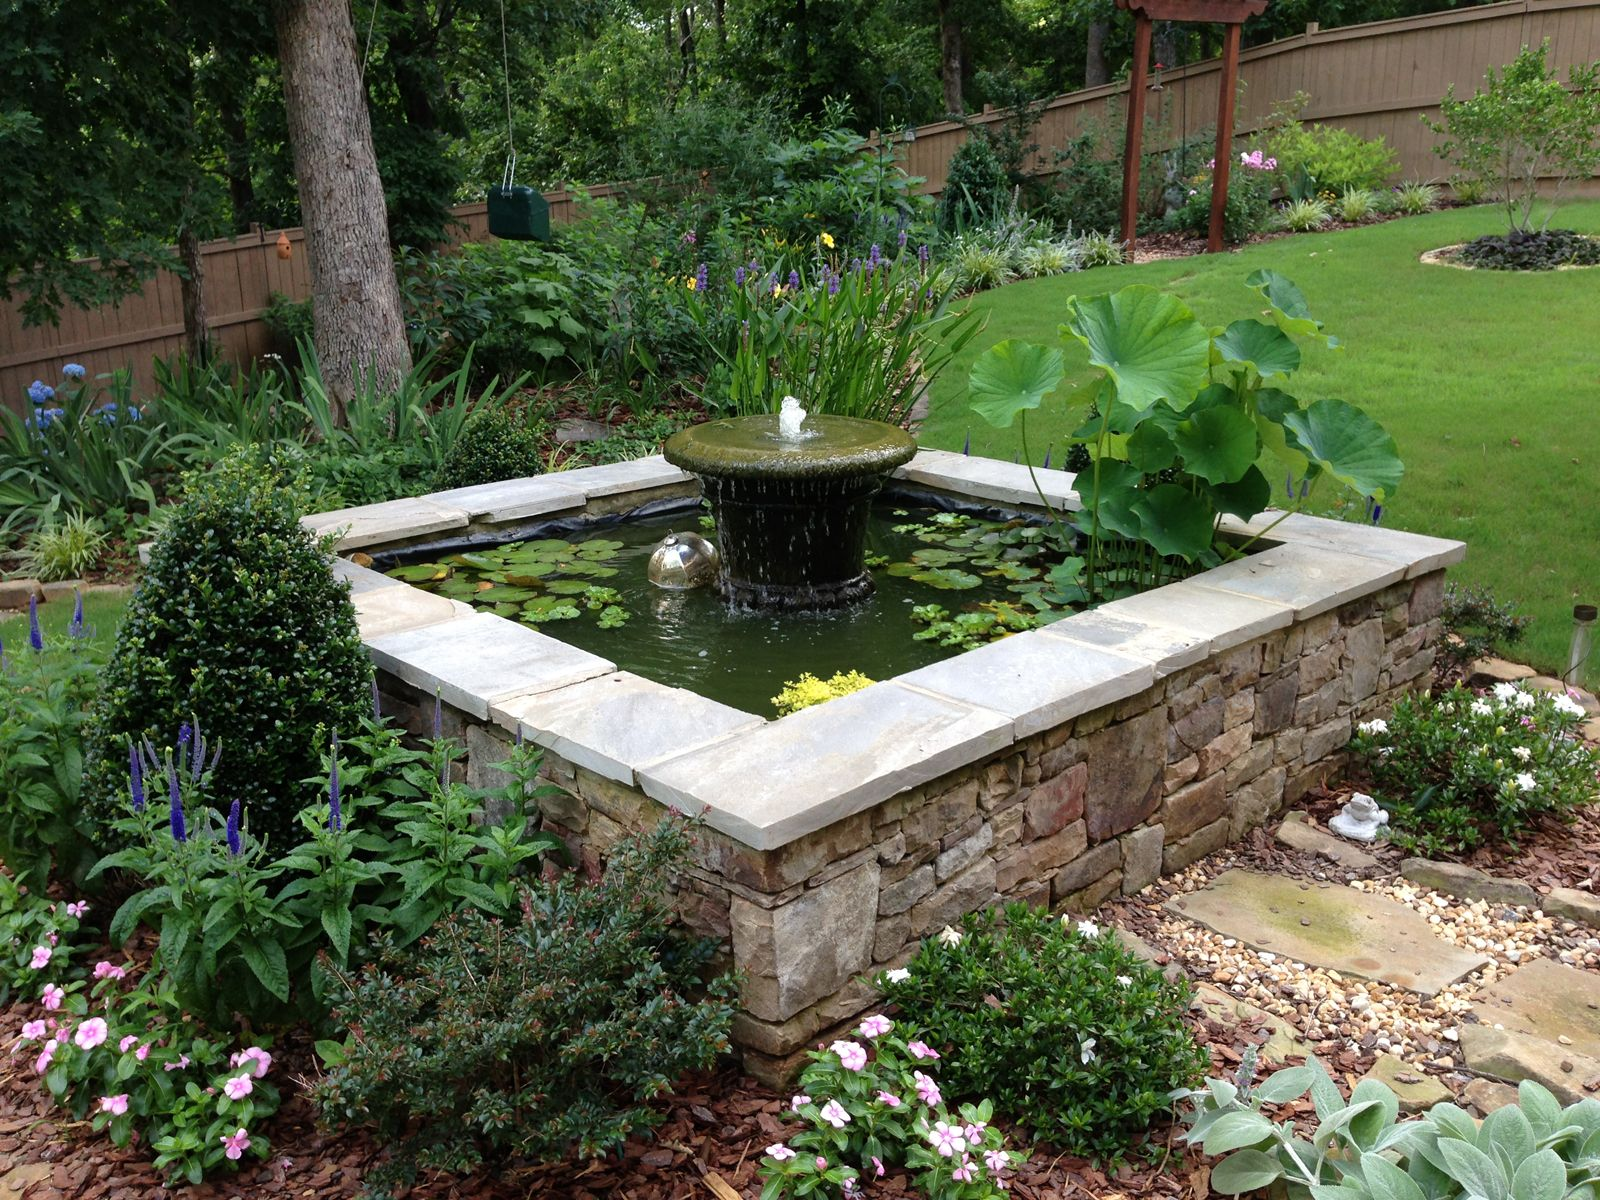 Square water pool carol bill 39 s garden in georgia for Garden with a pond